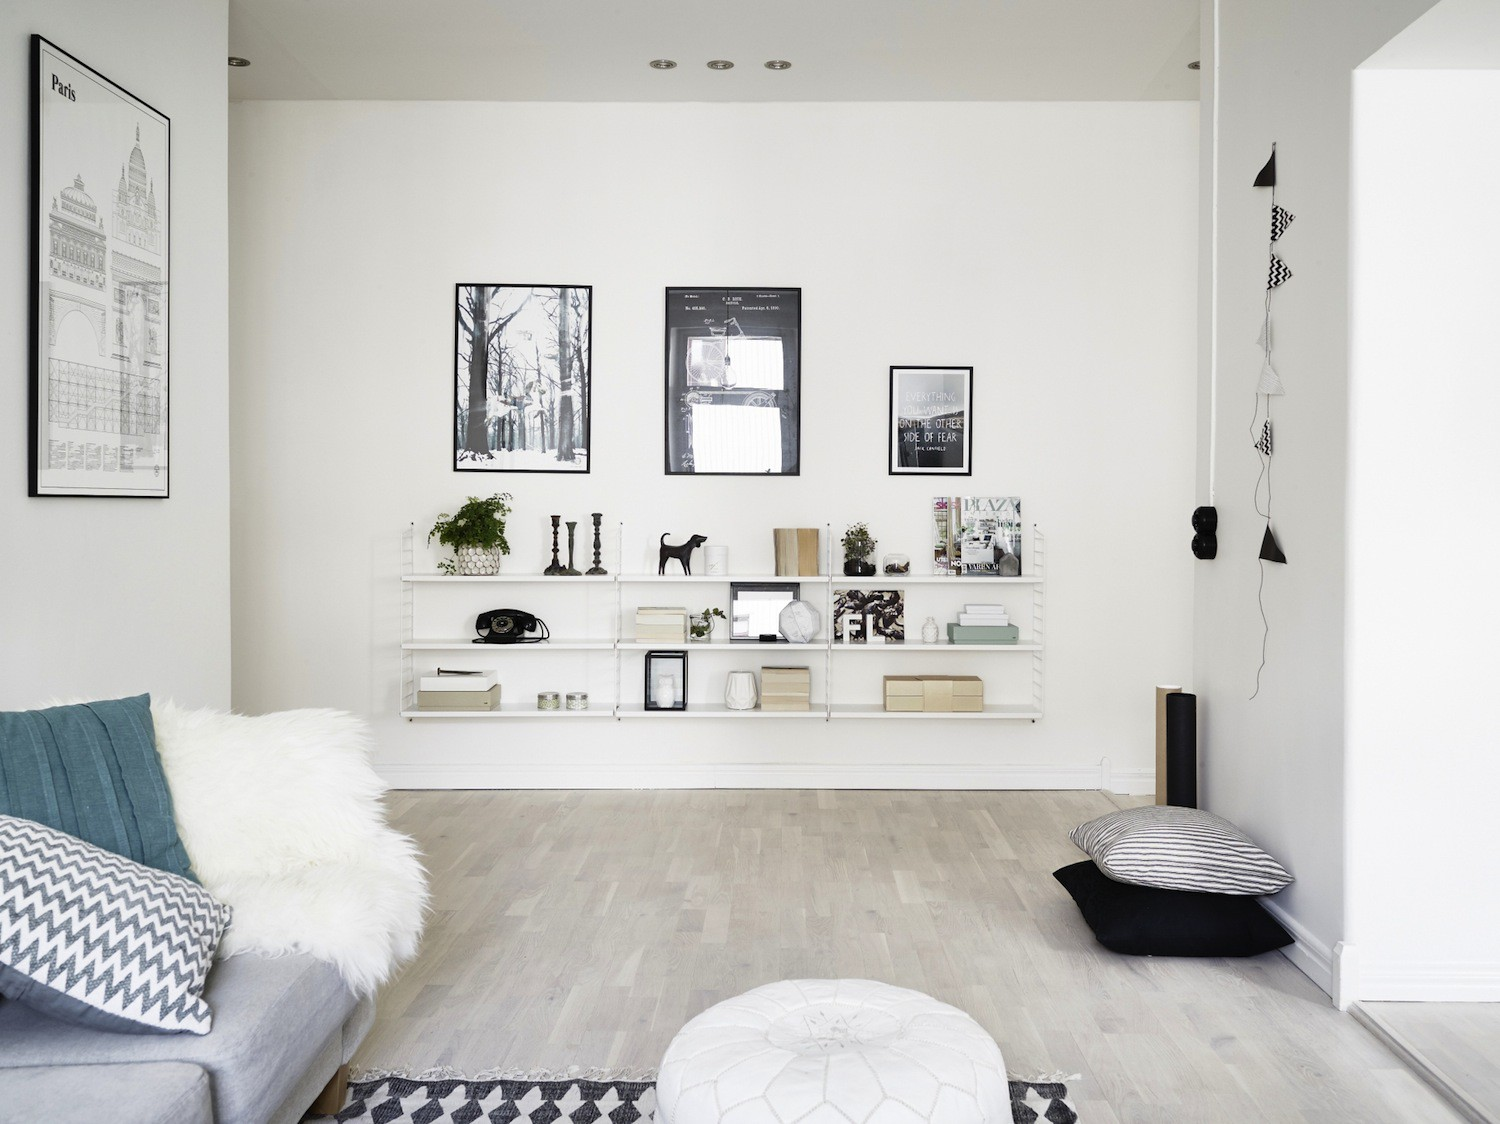 Wohnzimmer Design Ideen Ikea Wohnwand Holz Pictures to pin on ...